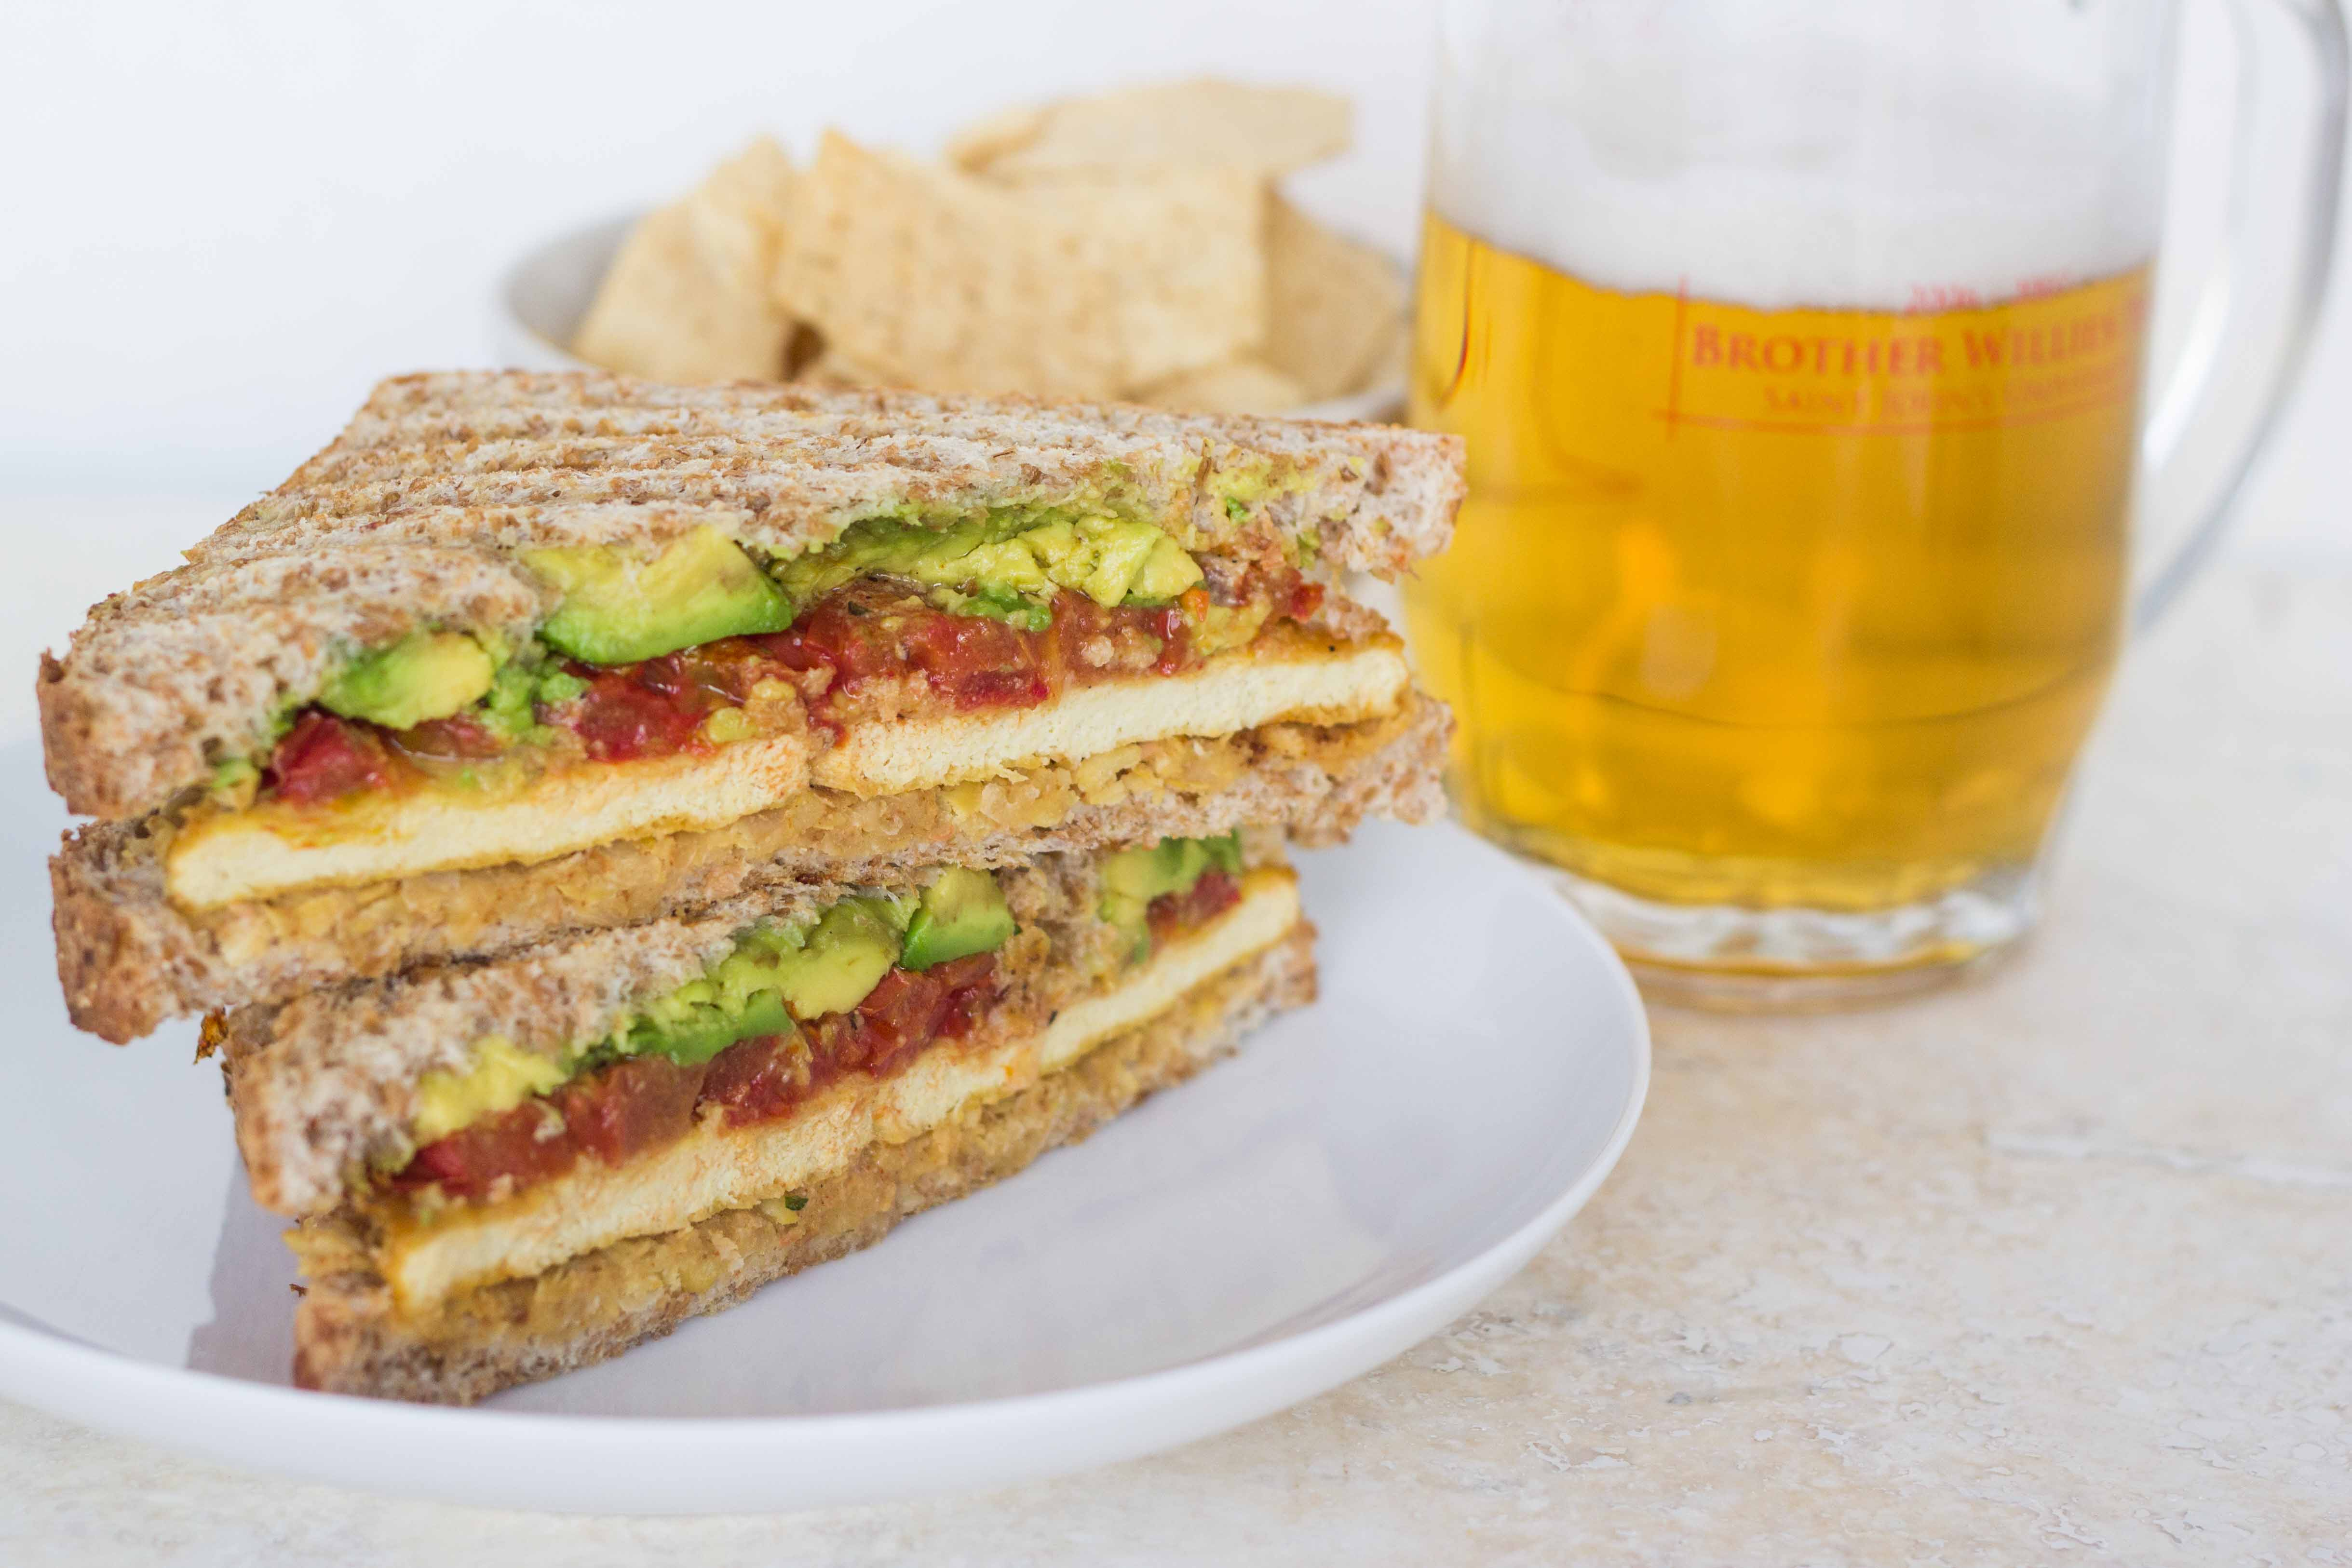 ... Chickpea, Roasted Tomato, and Avocado Sandwich | Veggie and the Beast